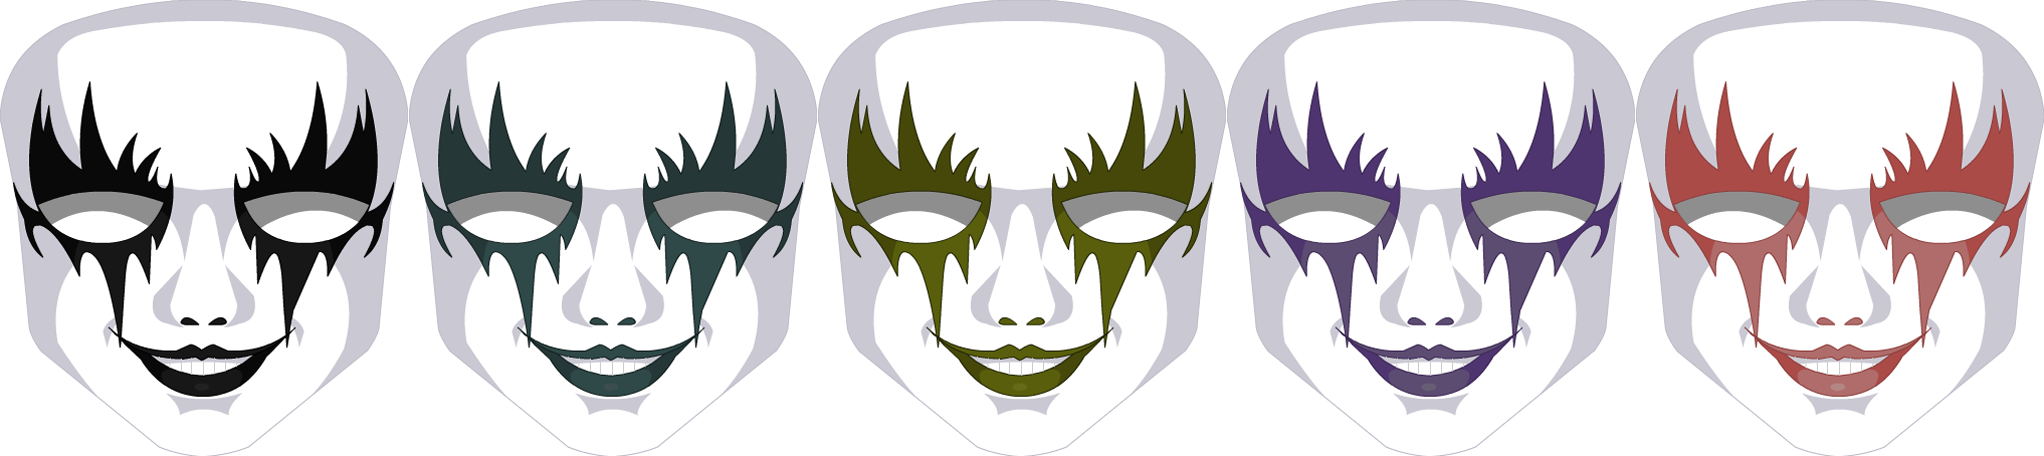 Topsy-Turvy Mask - Female